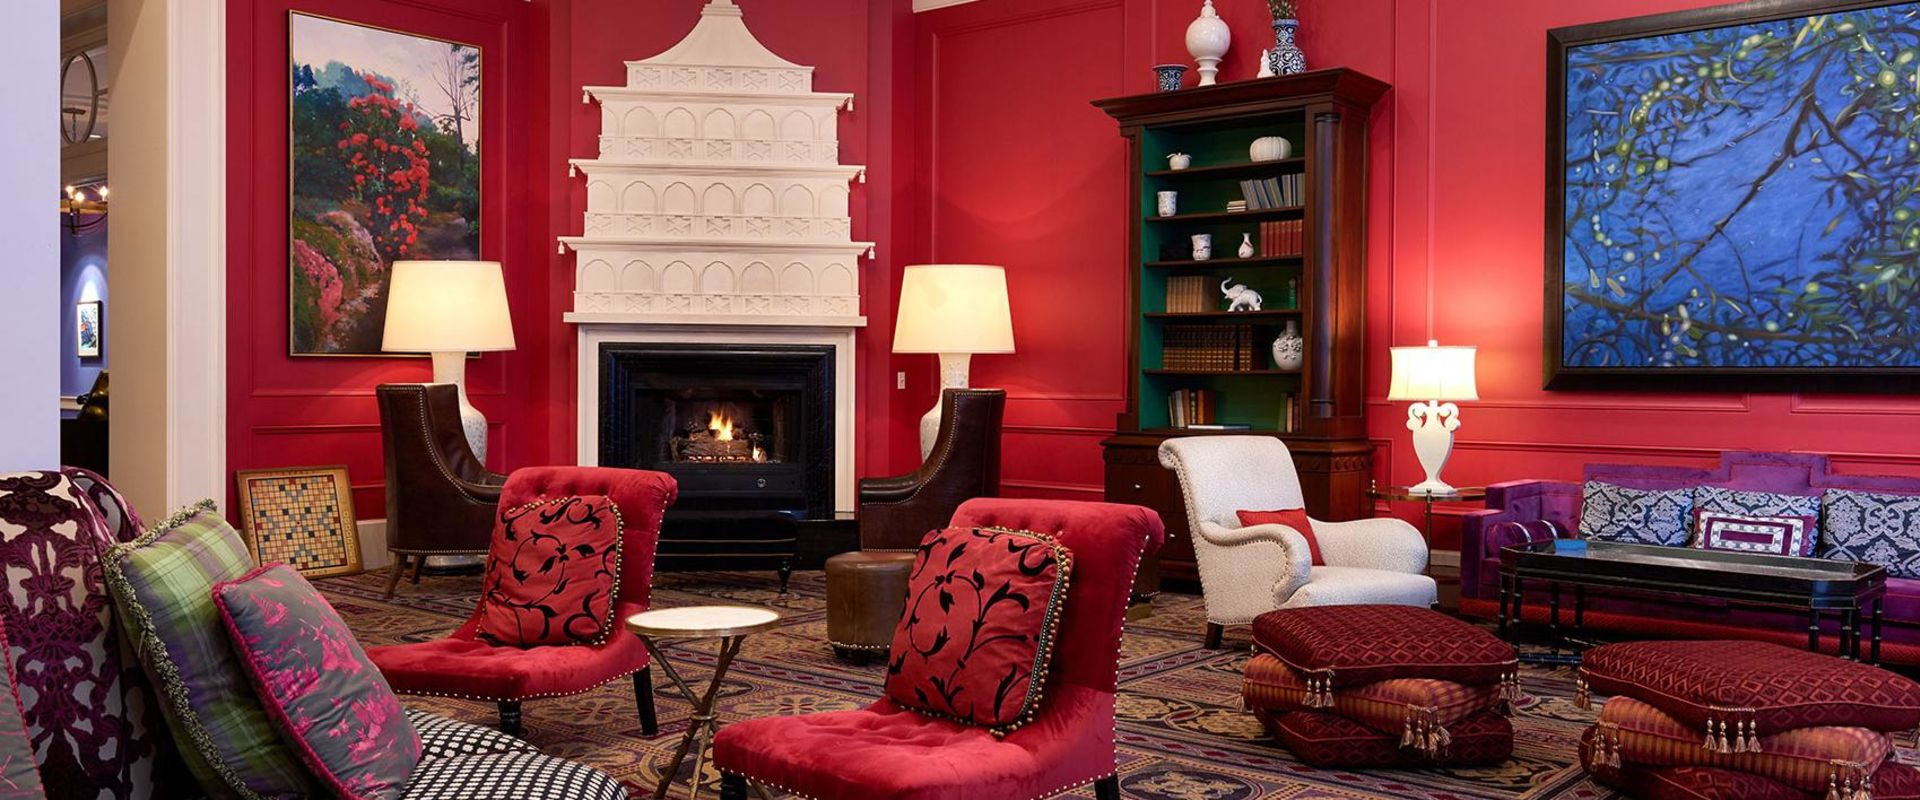 Downtown Portland Lobby Seating and Fireplace